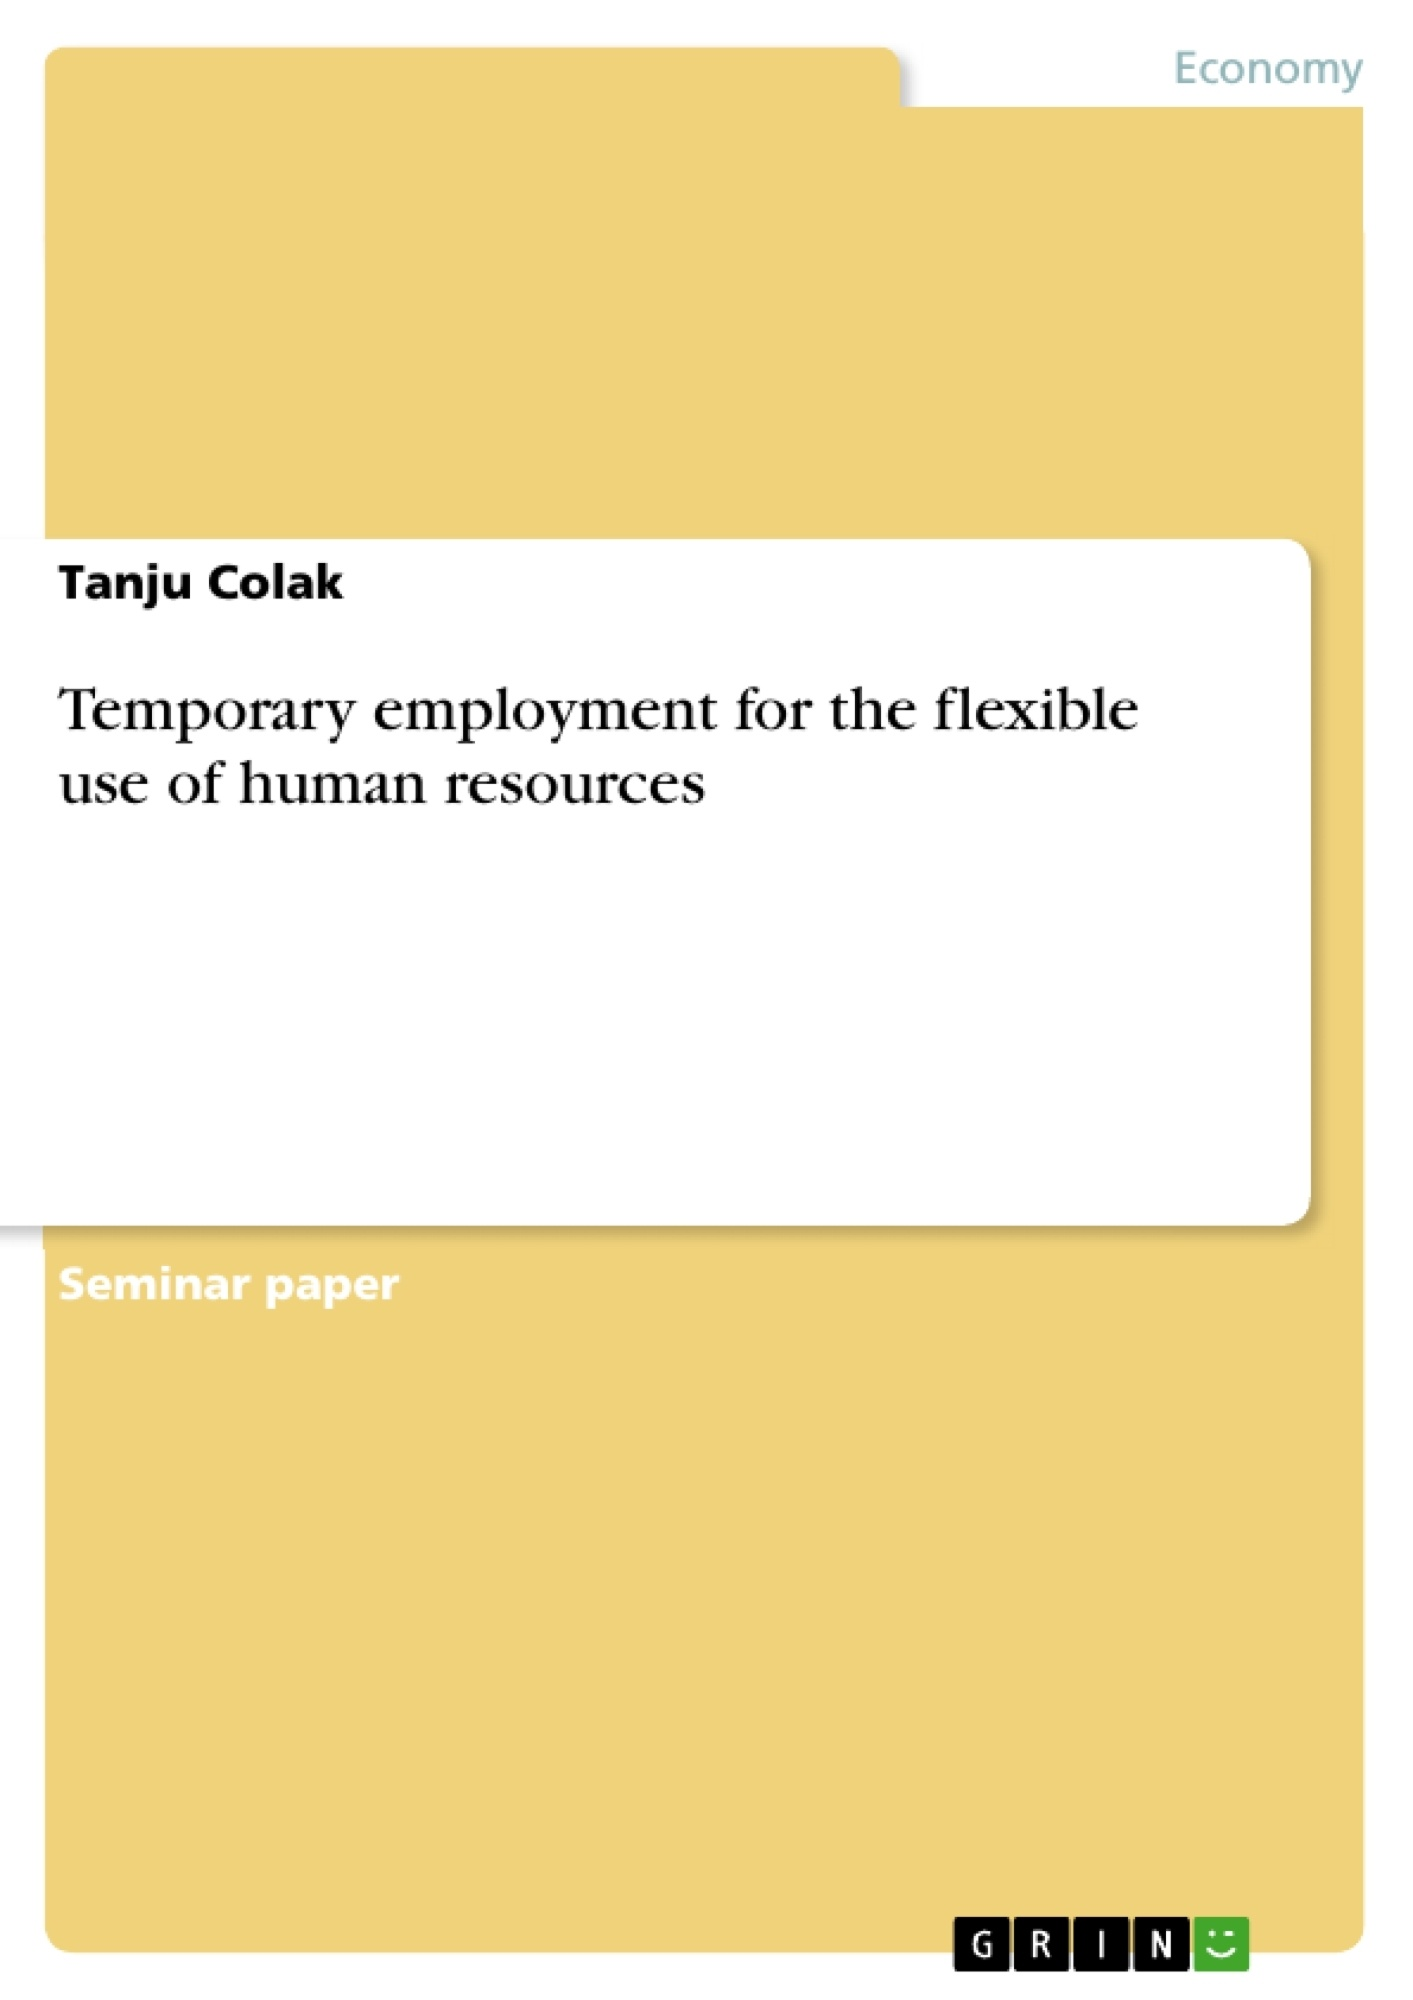 human resources term paper